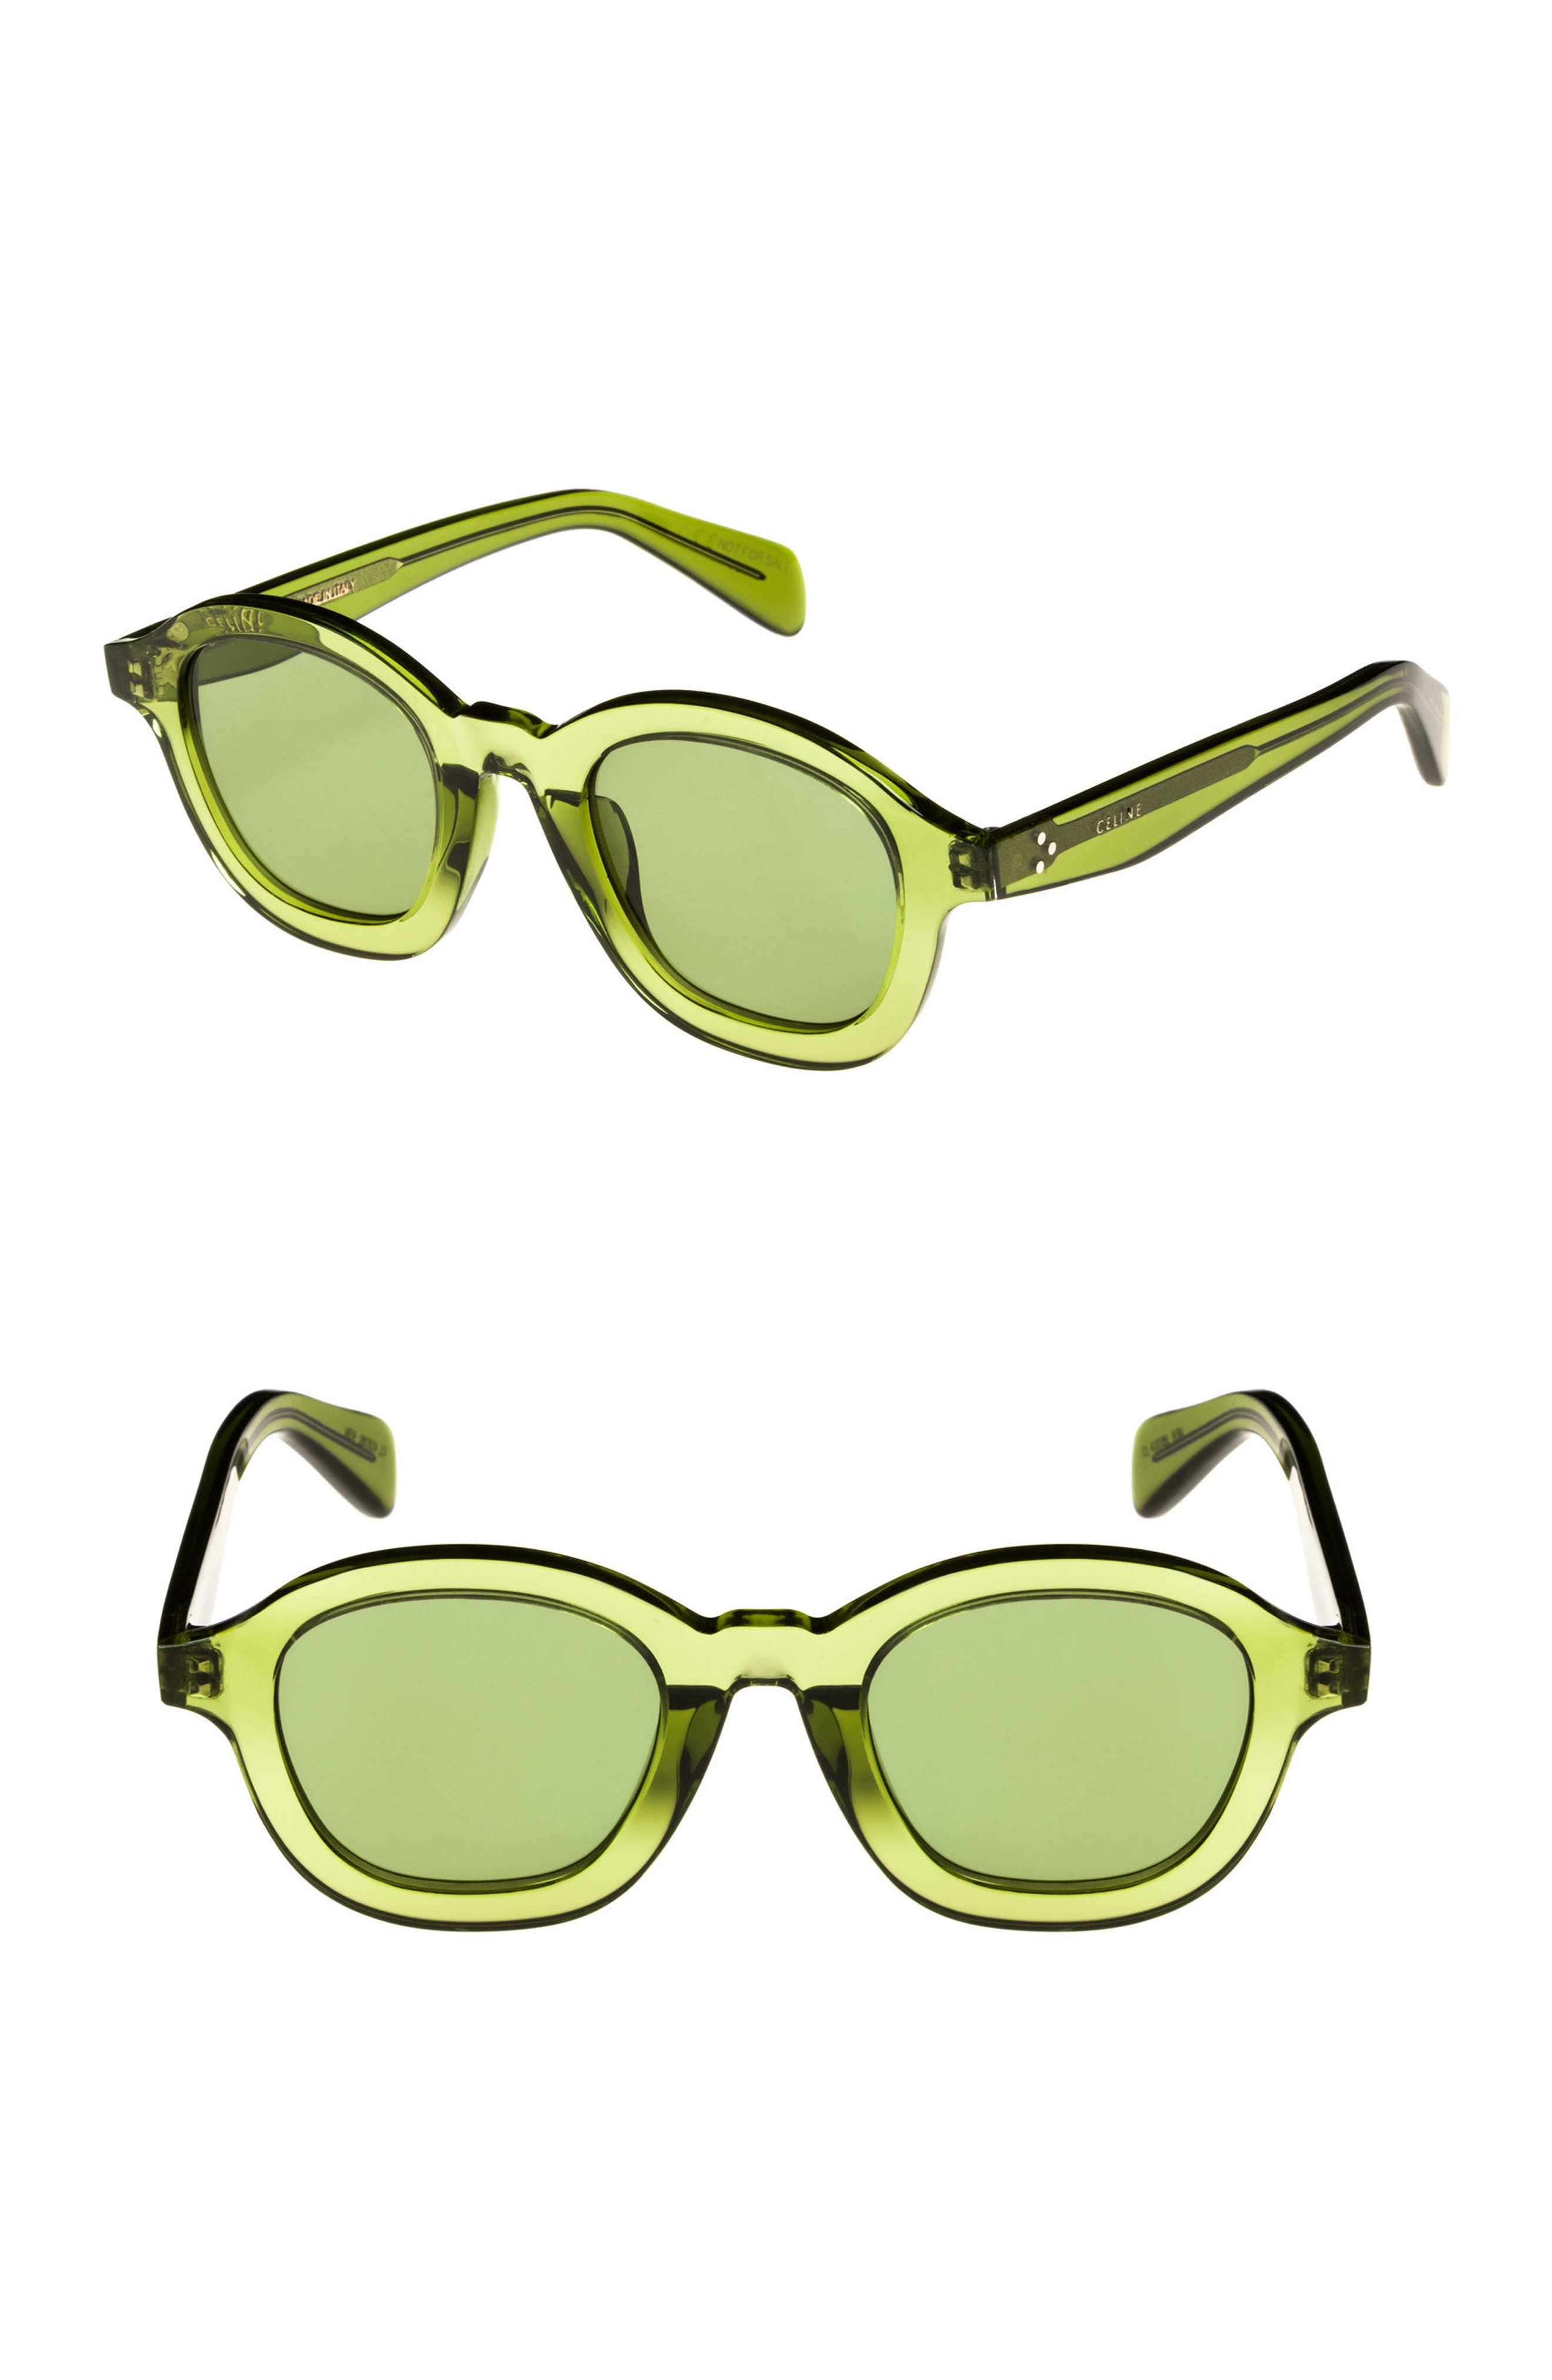 47mm Round Sunglasses,                         Main,                         color, Green